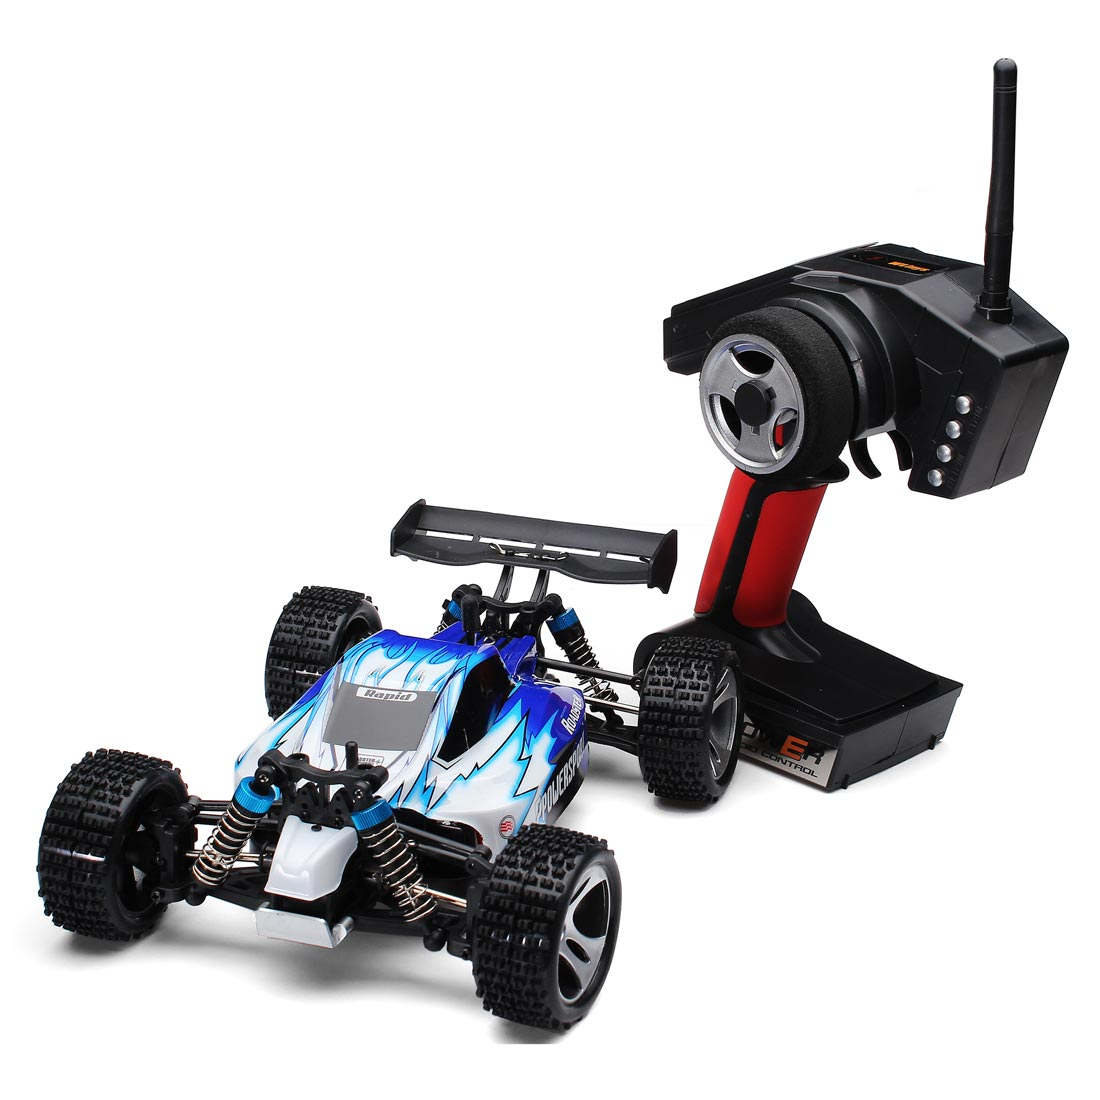 Wltoys A959 Rc Car 1/18 2.4Gh 4WD Off-Road Buggy With TransmitterWltoys A959 Rc Car 1/18 2.4Gh 4WD Off-Road Buggy With Transmitter